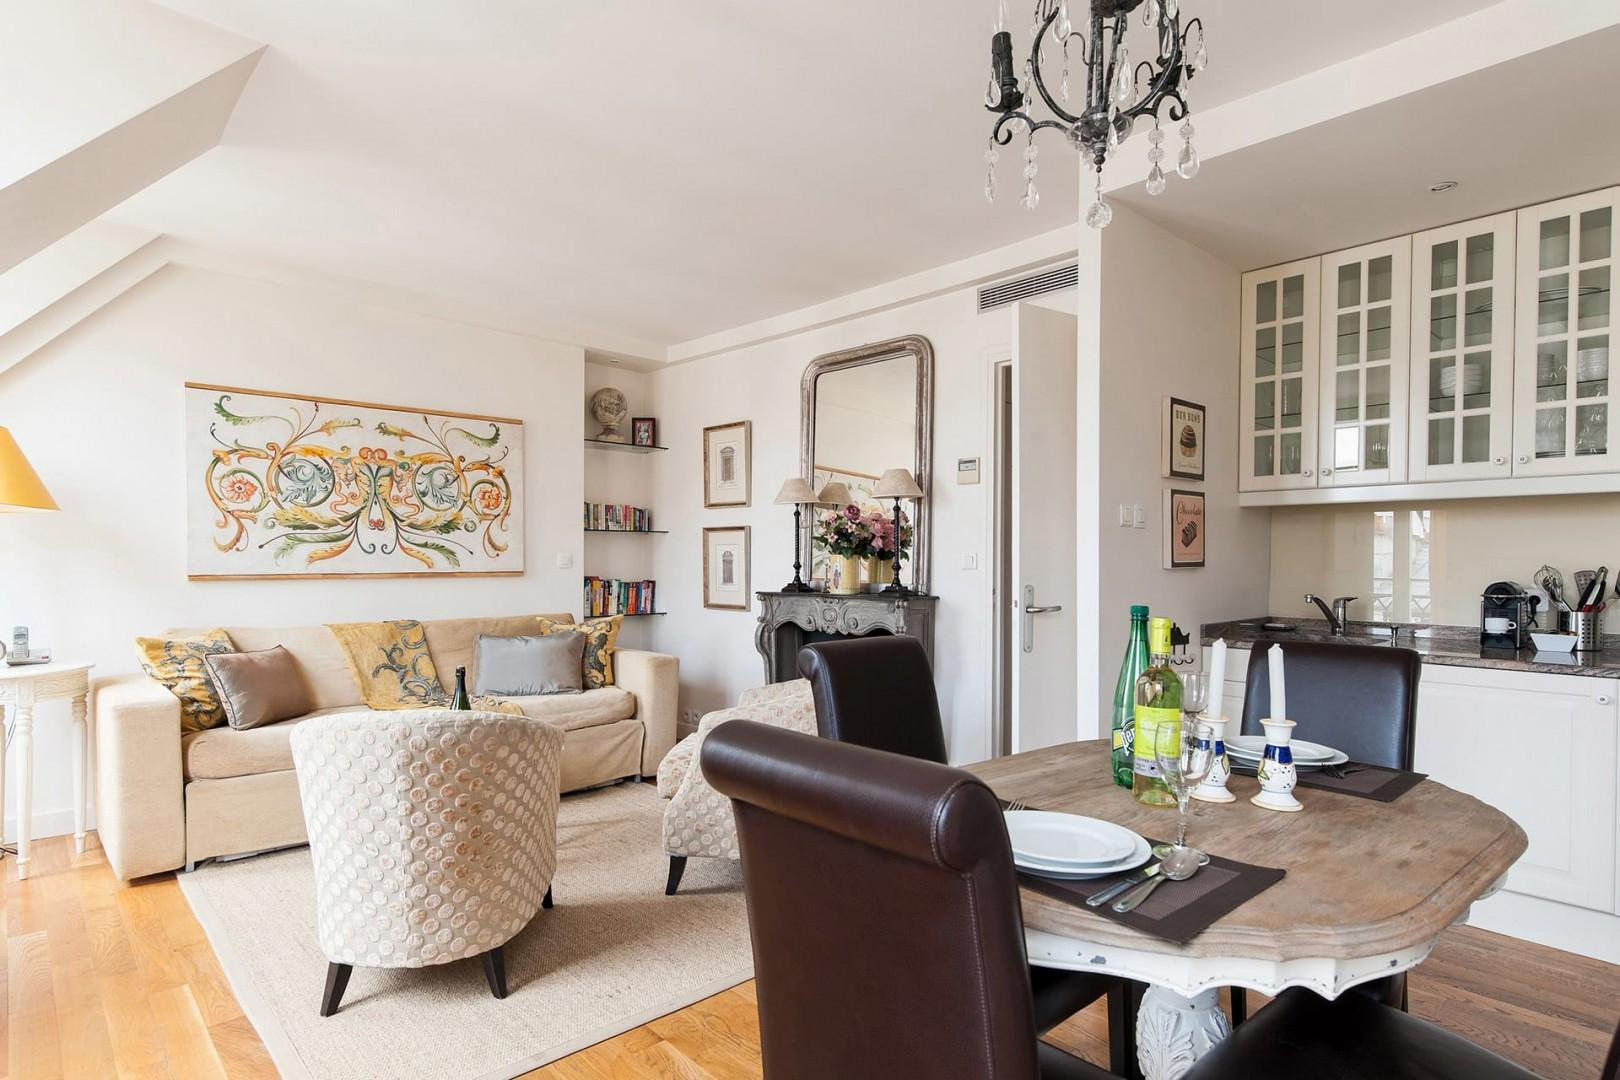 Relax in the bright and sunny living and dining area.